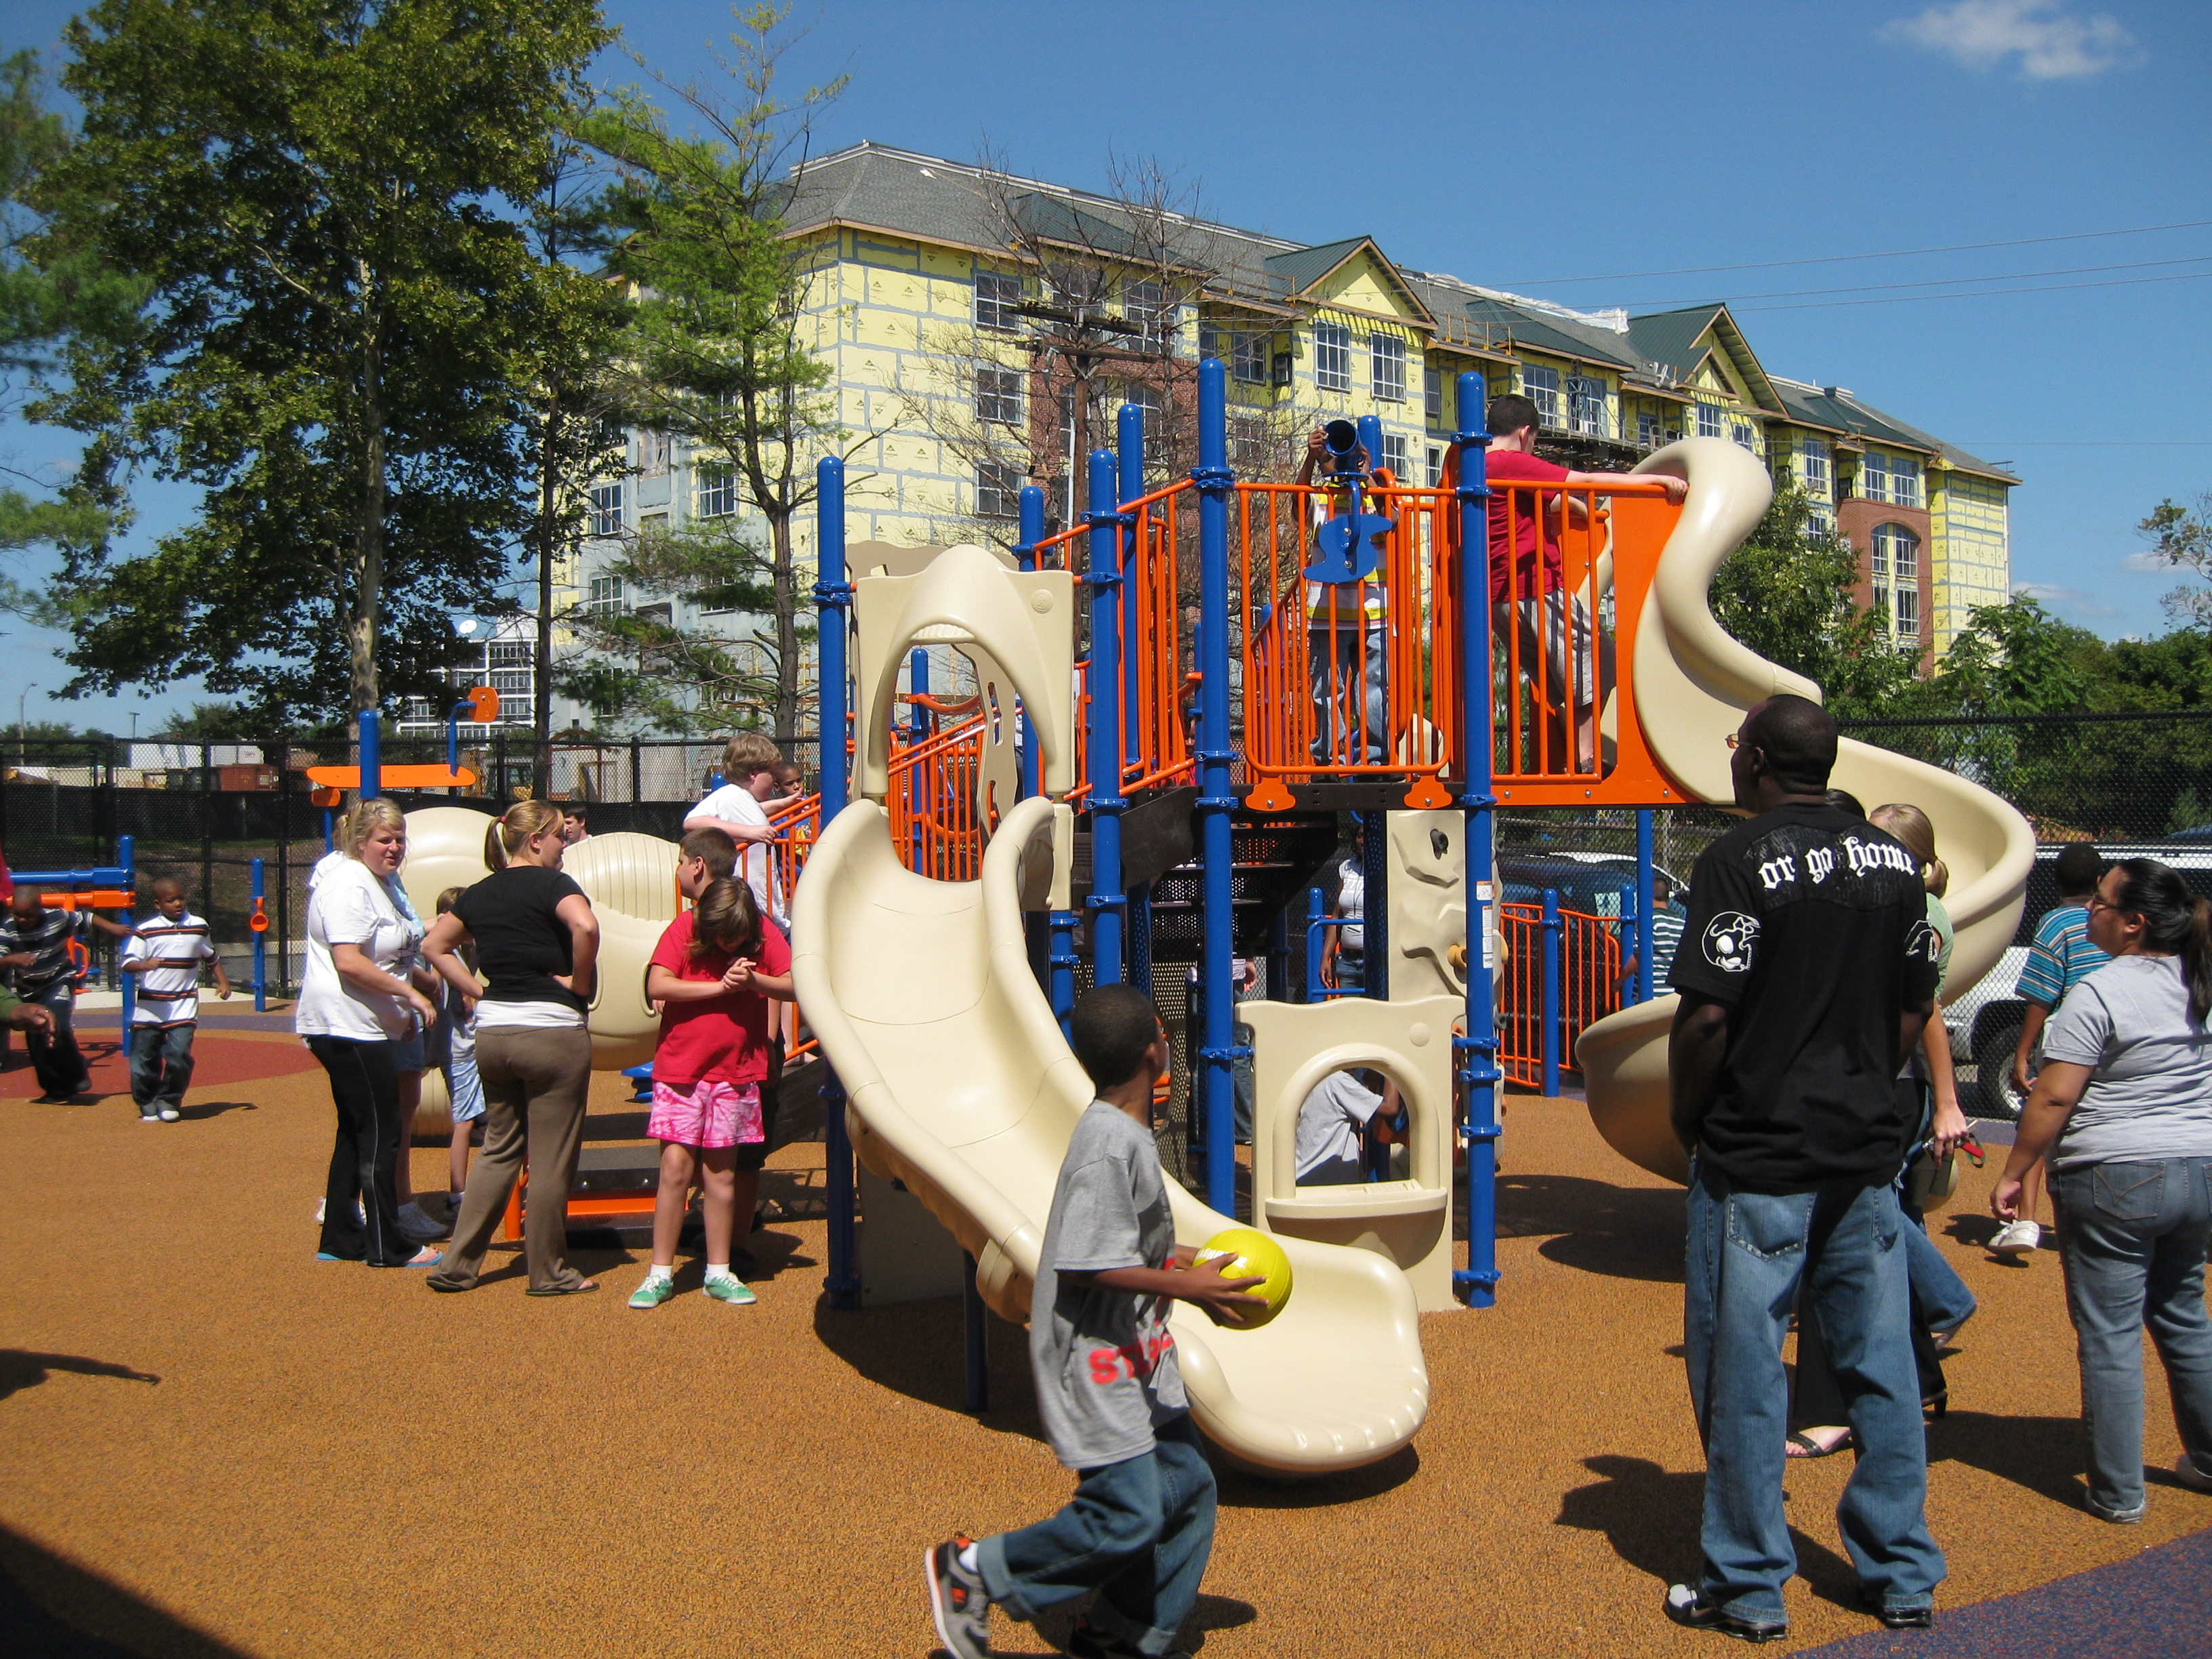 Forbush School Playground